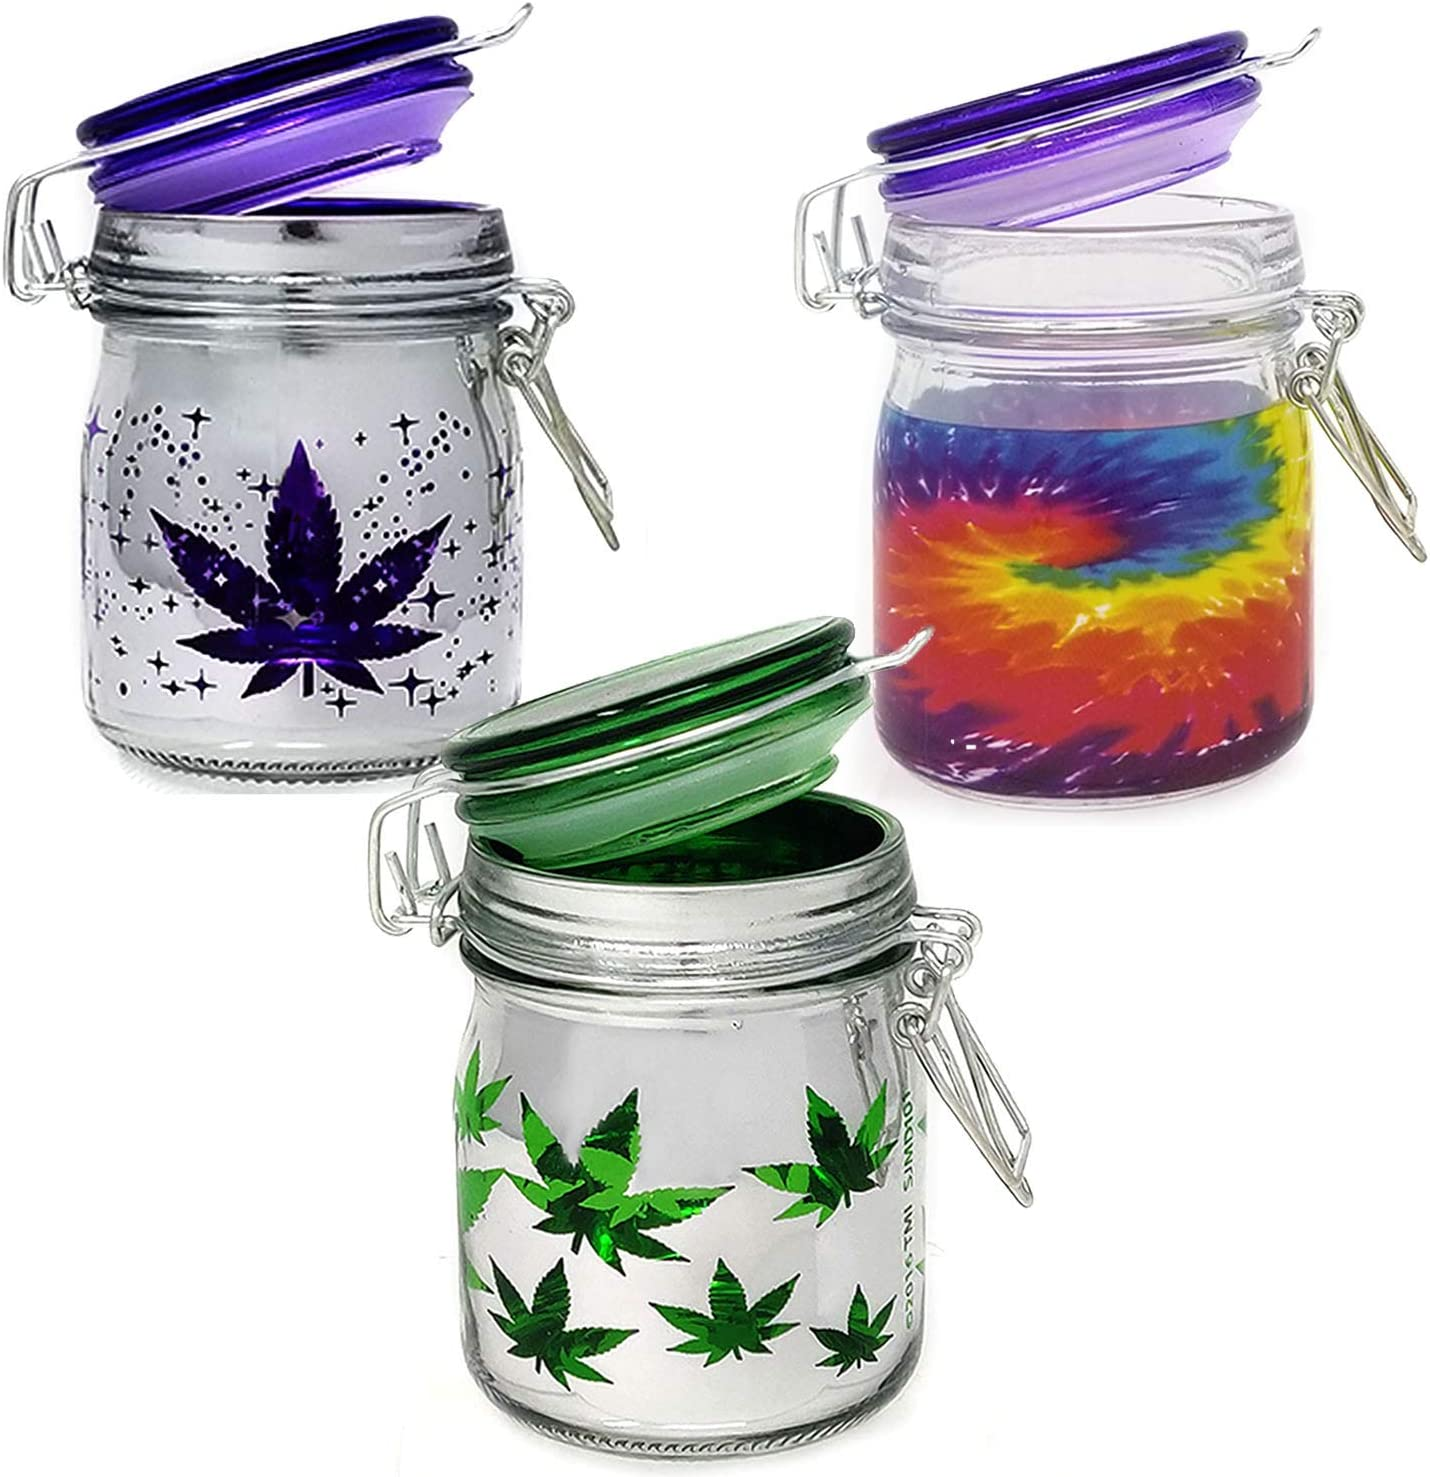 Airtight Glass Herb Large Stash Jar Set Of 3 Pot Leaf Tie Dye And Purple Leaf Galaxy Metallic Silver Designs 5oz Amazon Ca Tools Home Improvement